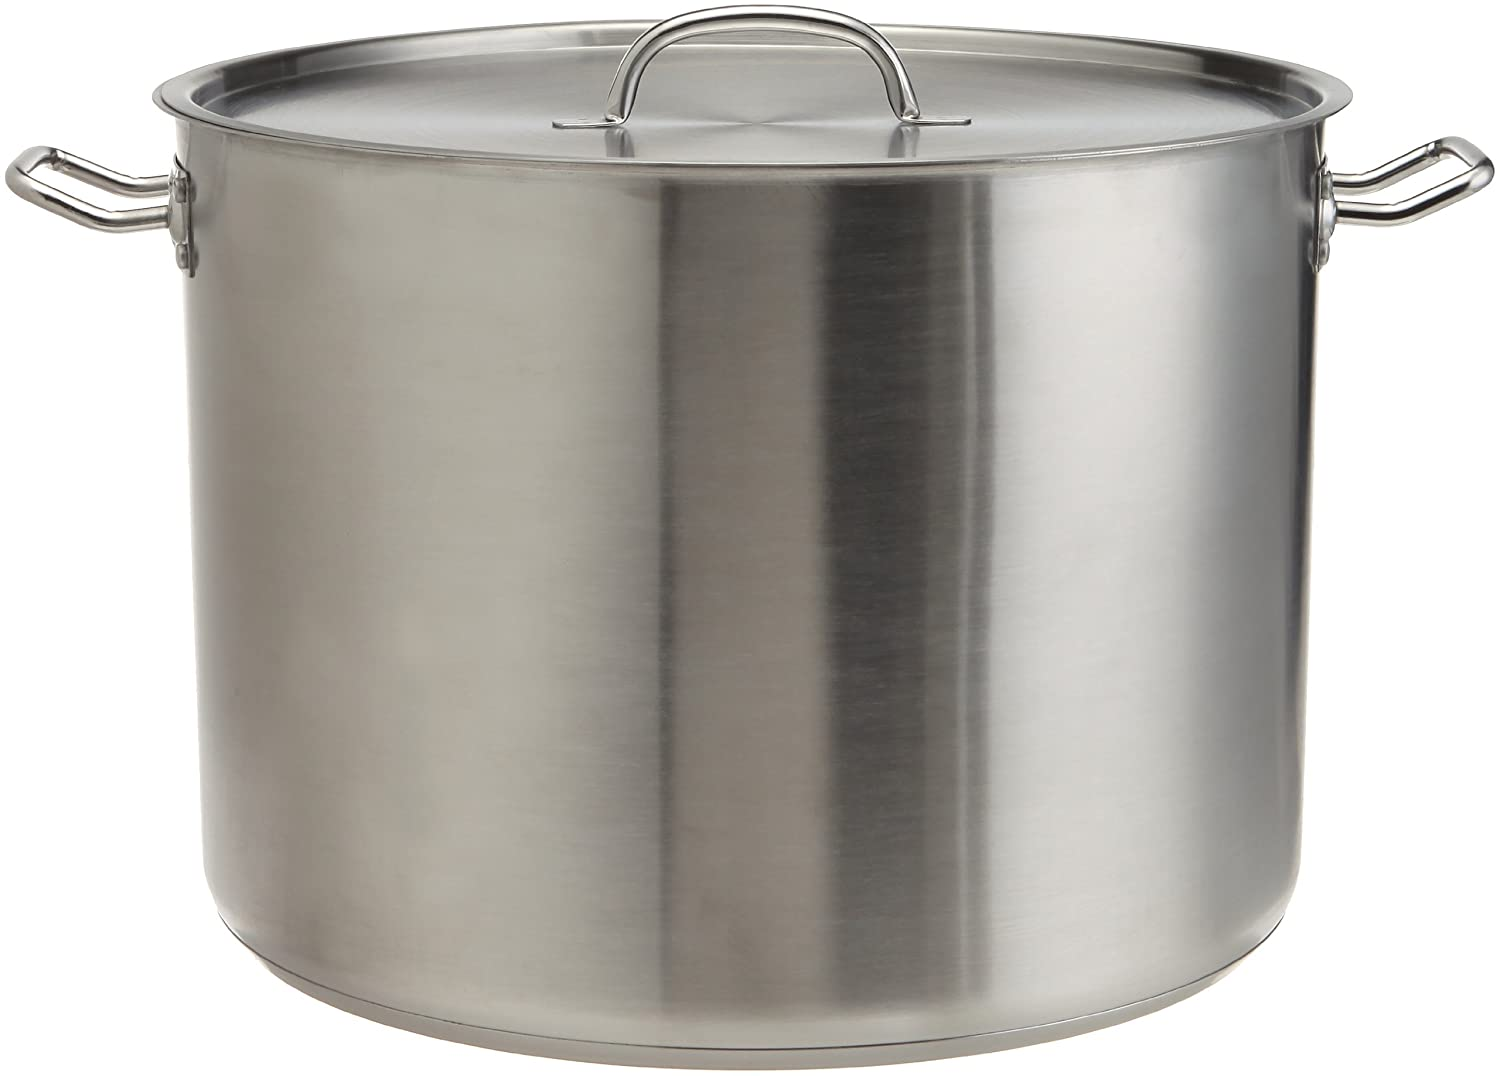 ExcelSteel 514 35 QT Stainless Steel Stock Pot with Encapsulated Base, Large Prime Pacific